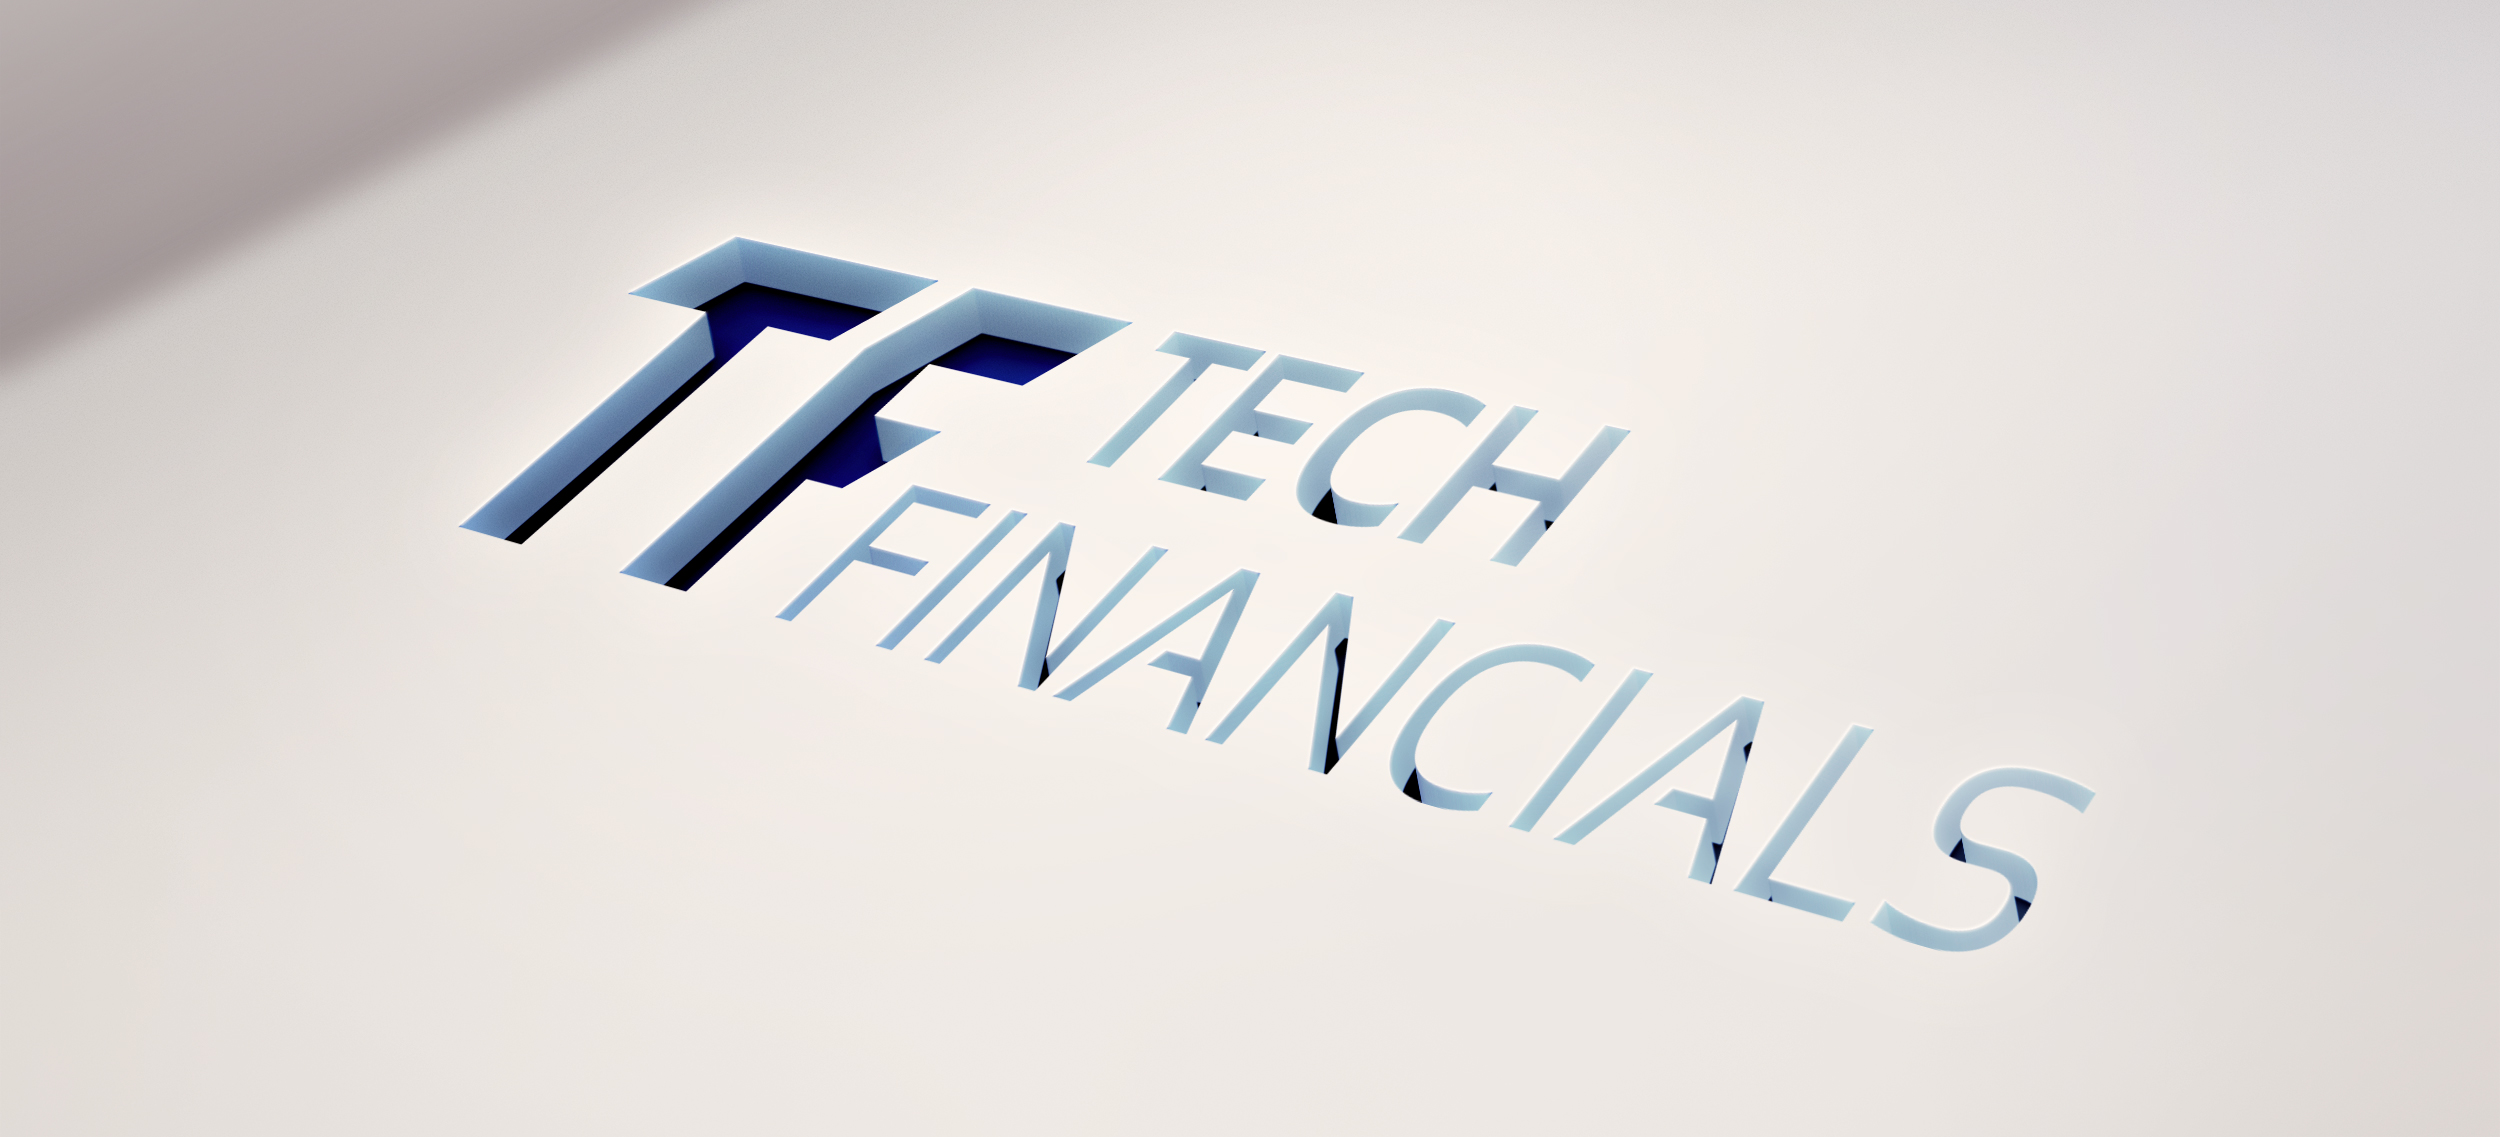 TechFinancials_Cutout-Logo-Mock-Up_color_880-400-1.jpg